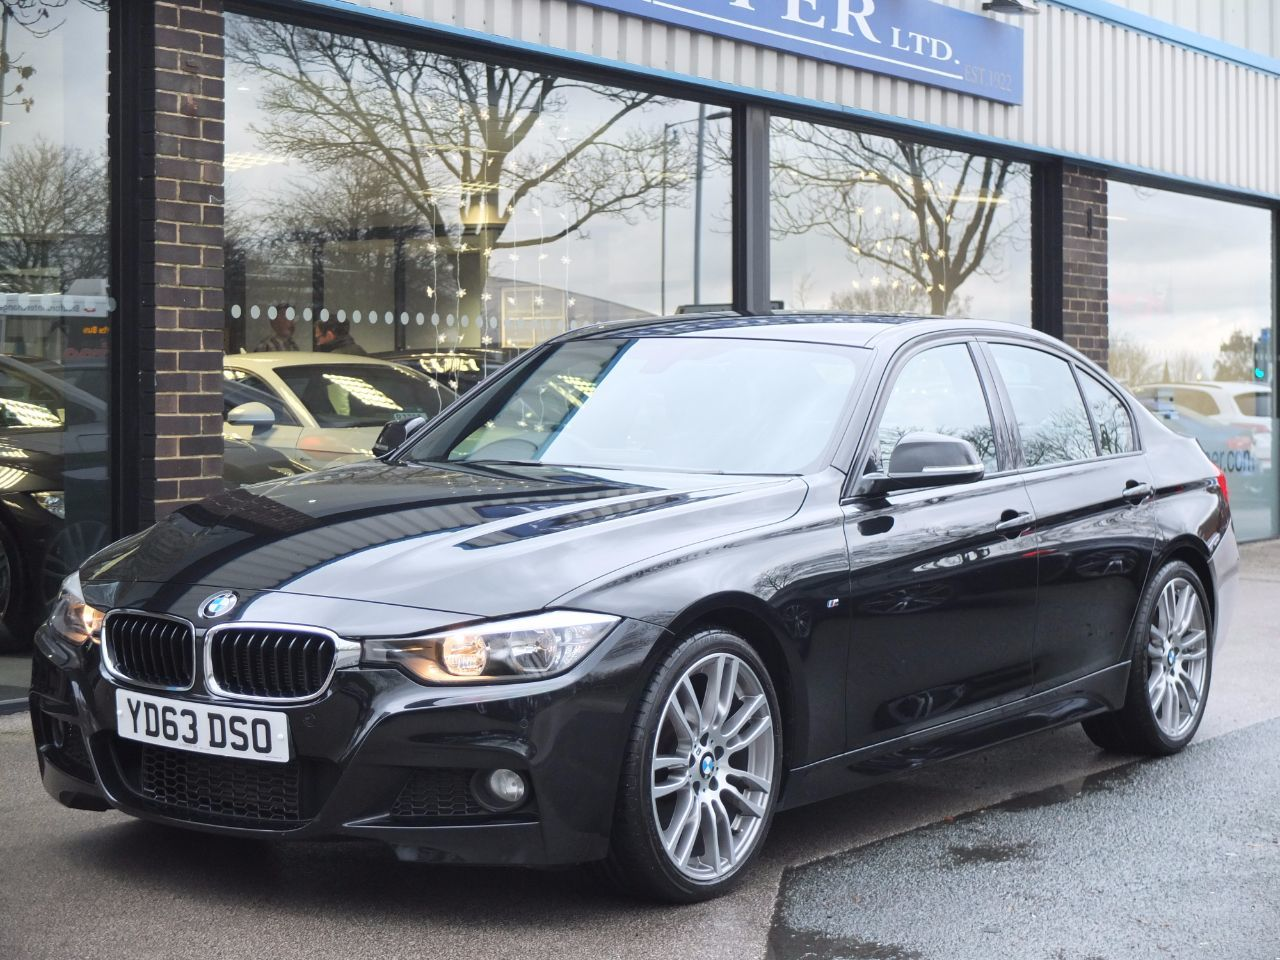 BMW 3 Series 3.0 330d Blue Performance M Sport Auto, Media Pack +++ Saloon Diesel Black Sapphire MetallicBMW 3 Series 3.0 330d Blue Performance M Sport Auto, Media Pack +++ Saloon Diesel Black Sapphire Metallic at fa Roper Ltd Bradford